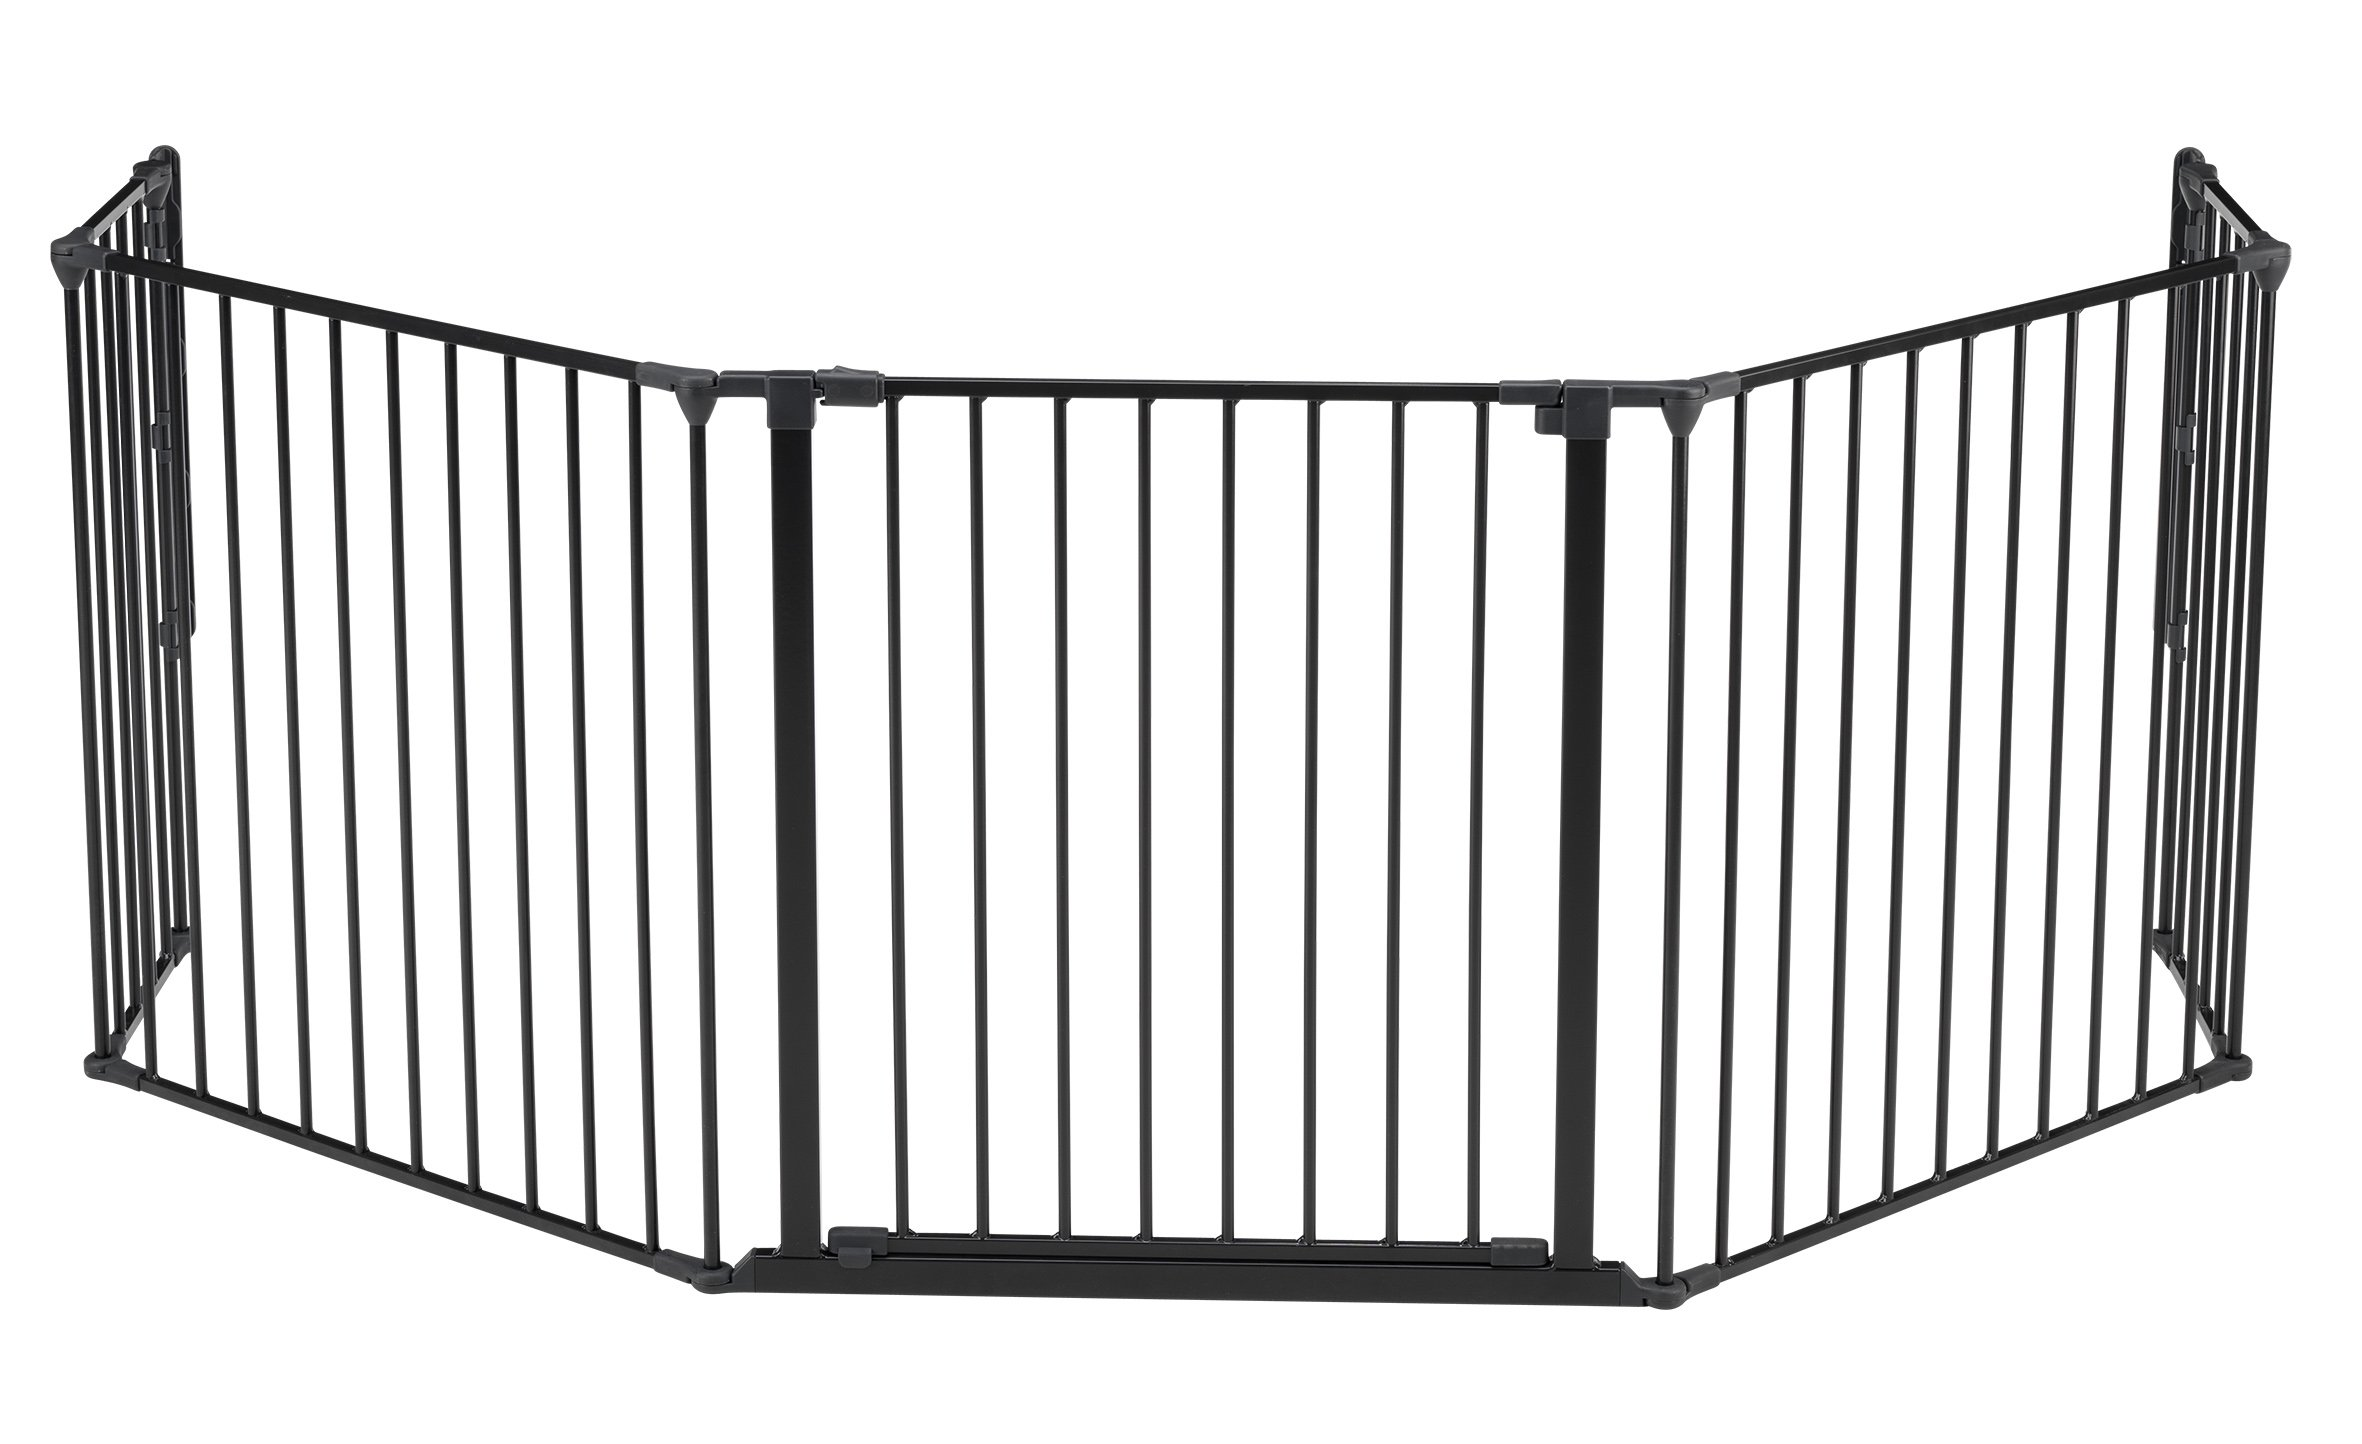 BabyDan Hearth Gate/Room Divider (Extra Large, 90-278cm, Anthracite)  Only configure system fulfilling newest european safety standard Multi purpose hearth gate and room divider There are 5 panels in total, 1 larger 72cm gate section panel, 2 larger 72cm panels and 2 smaller 33cm side panels. For shipping purposes, the 2 smaller side panels are connected by the interlocking pole 1